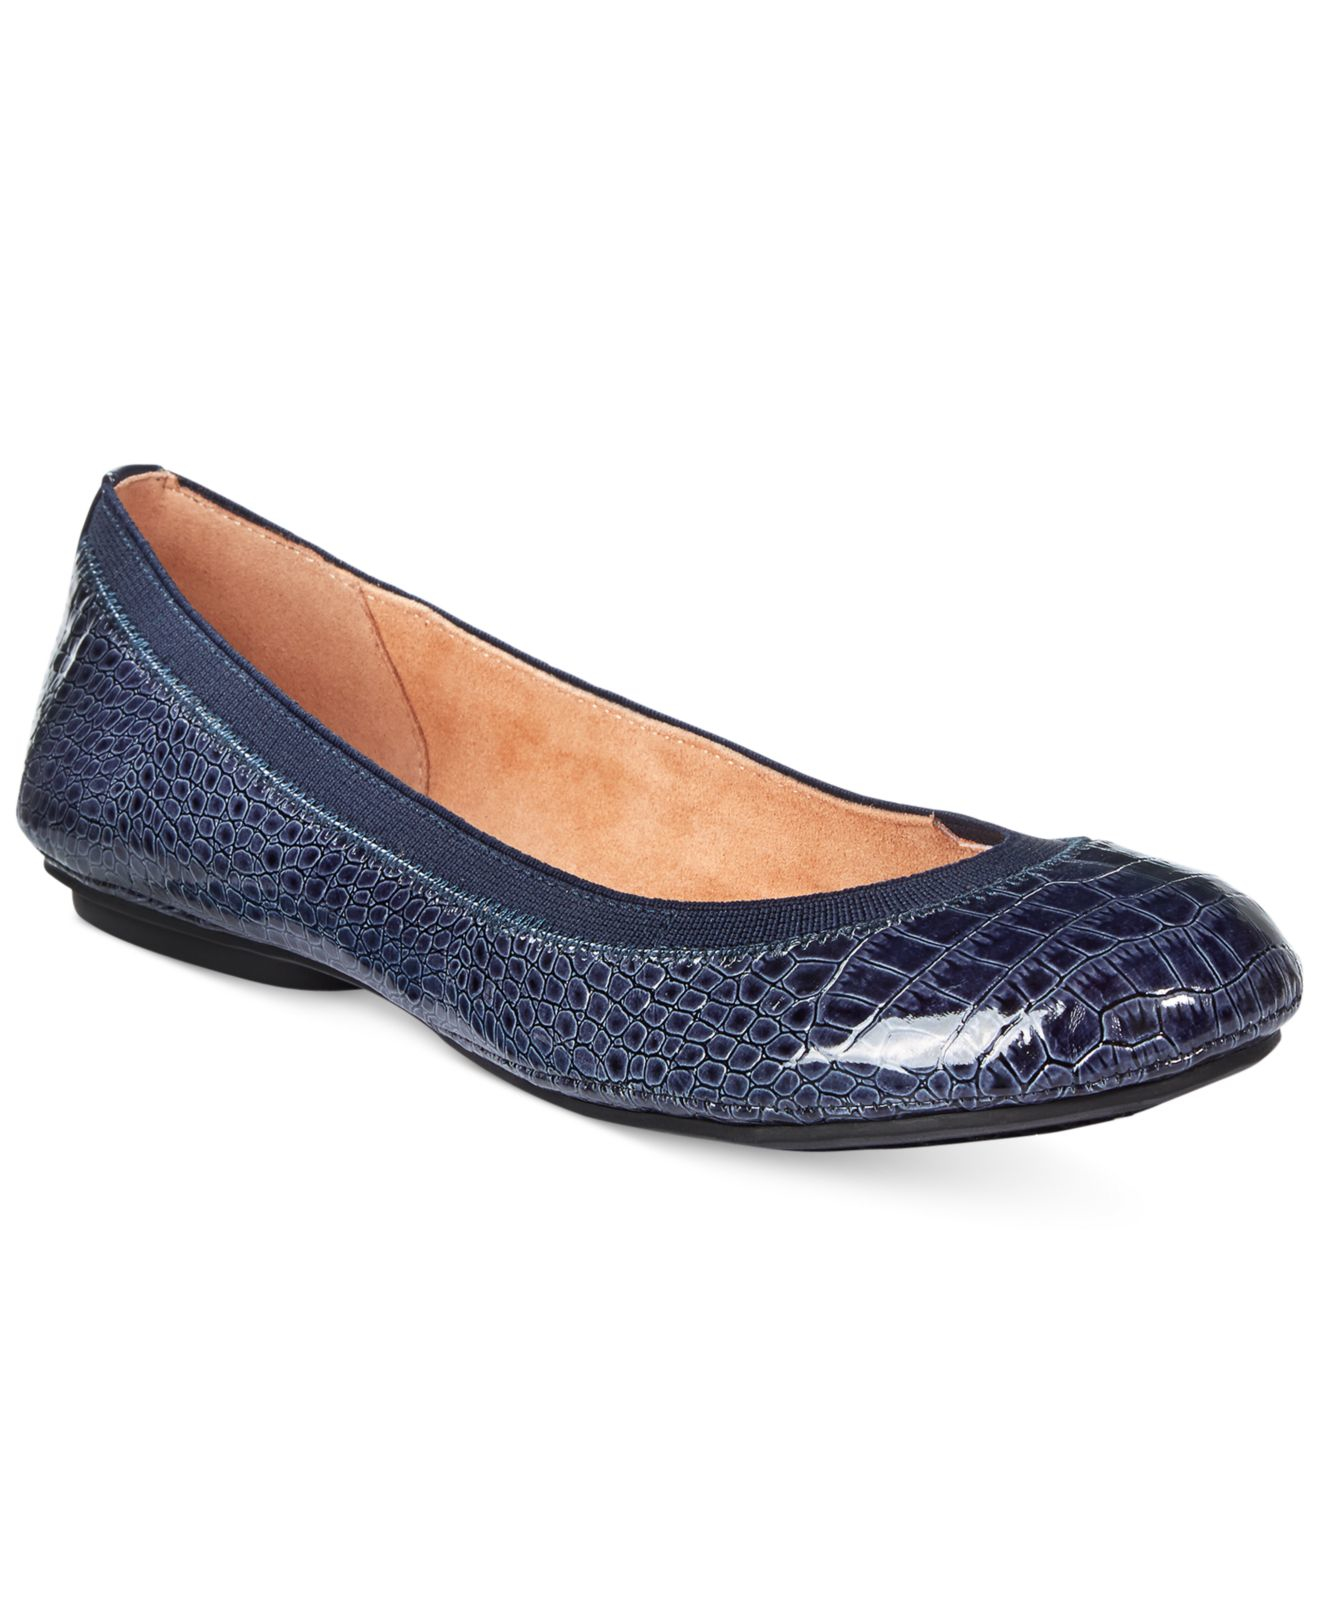 Shop for and buy navy flats online at Macy's. Find navy flats at Macy's.